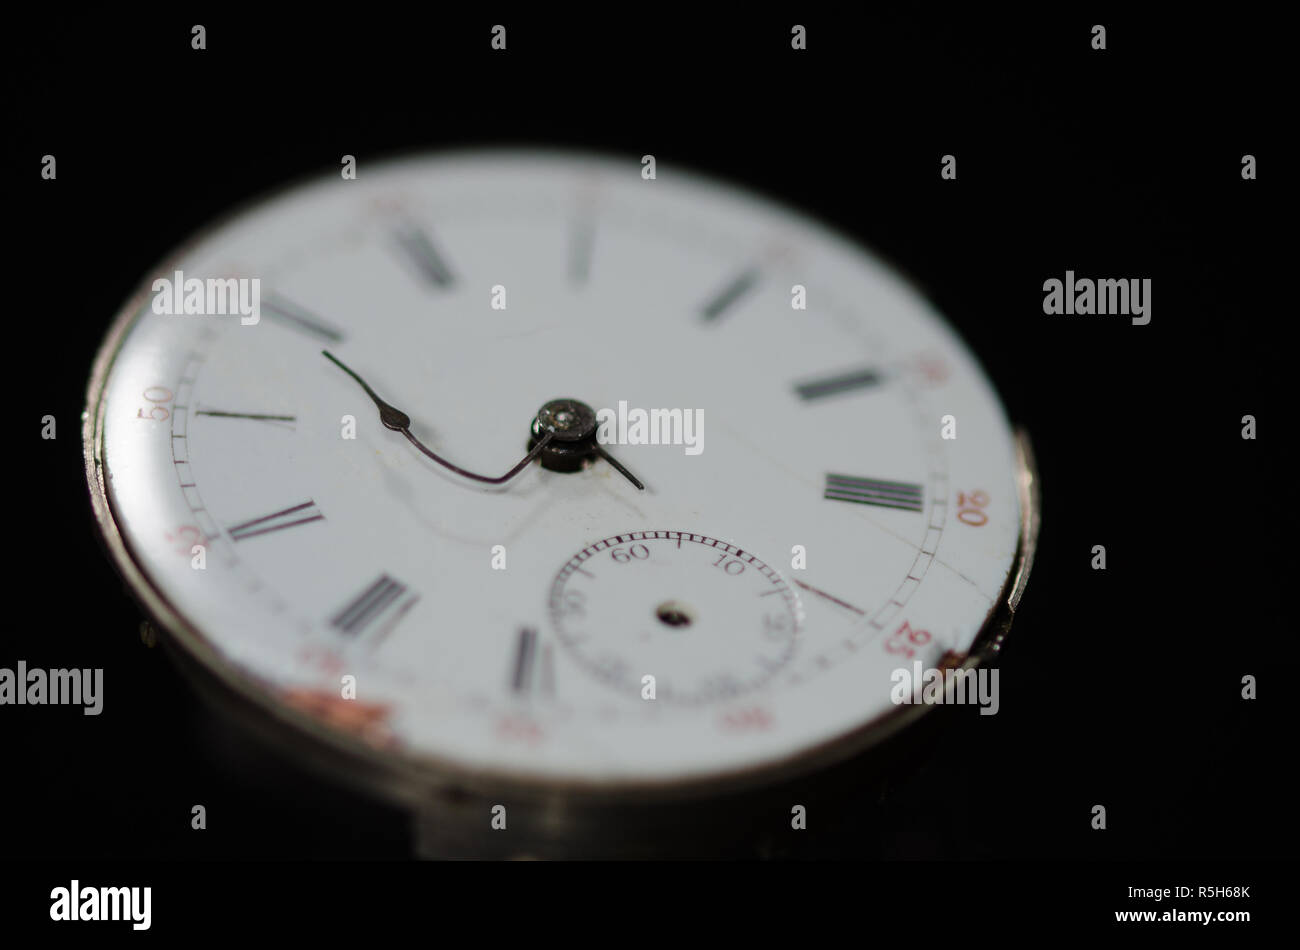 Stress of Impending Deadline Visible on Vintage Pocket Watch - Stock Image